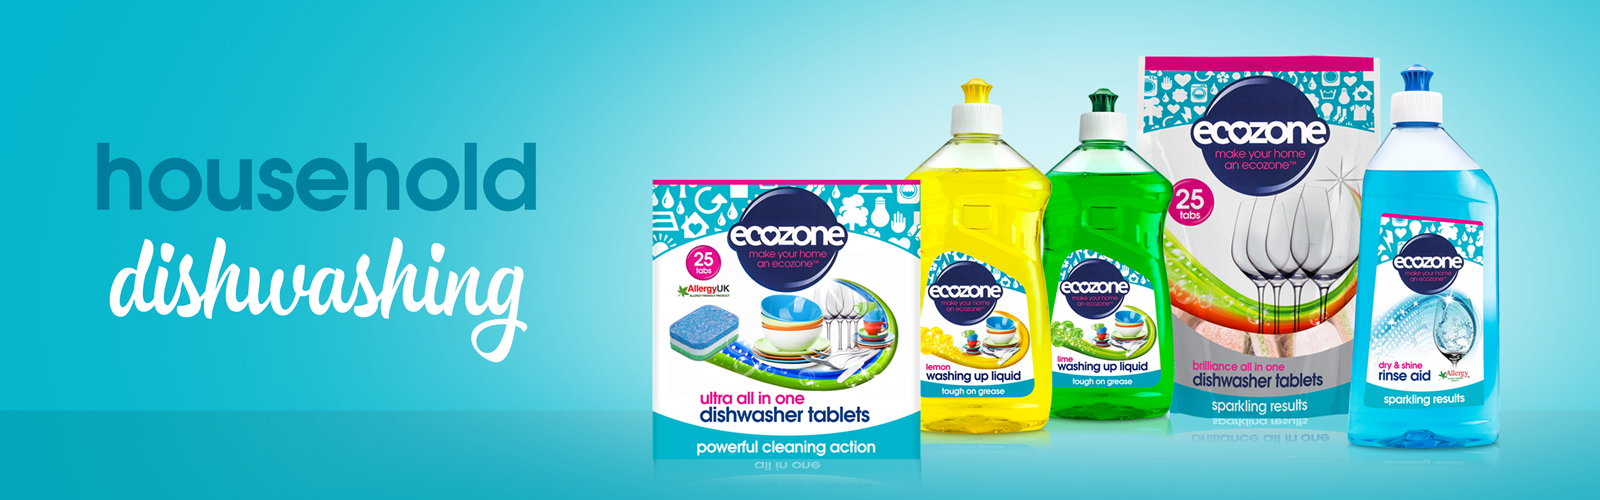 Natural Cleaning Products - Ecozone Household Dishwashing Banner